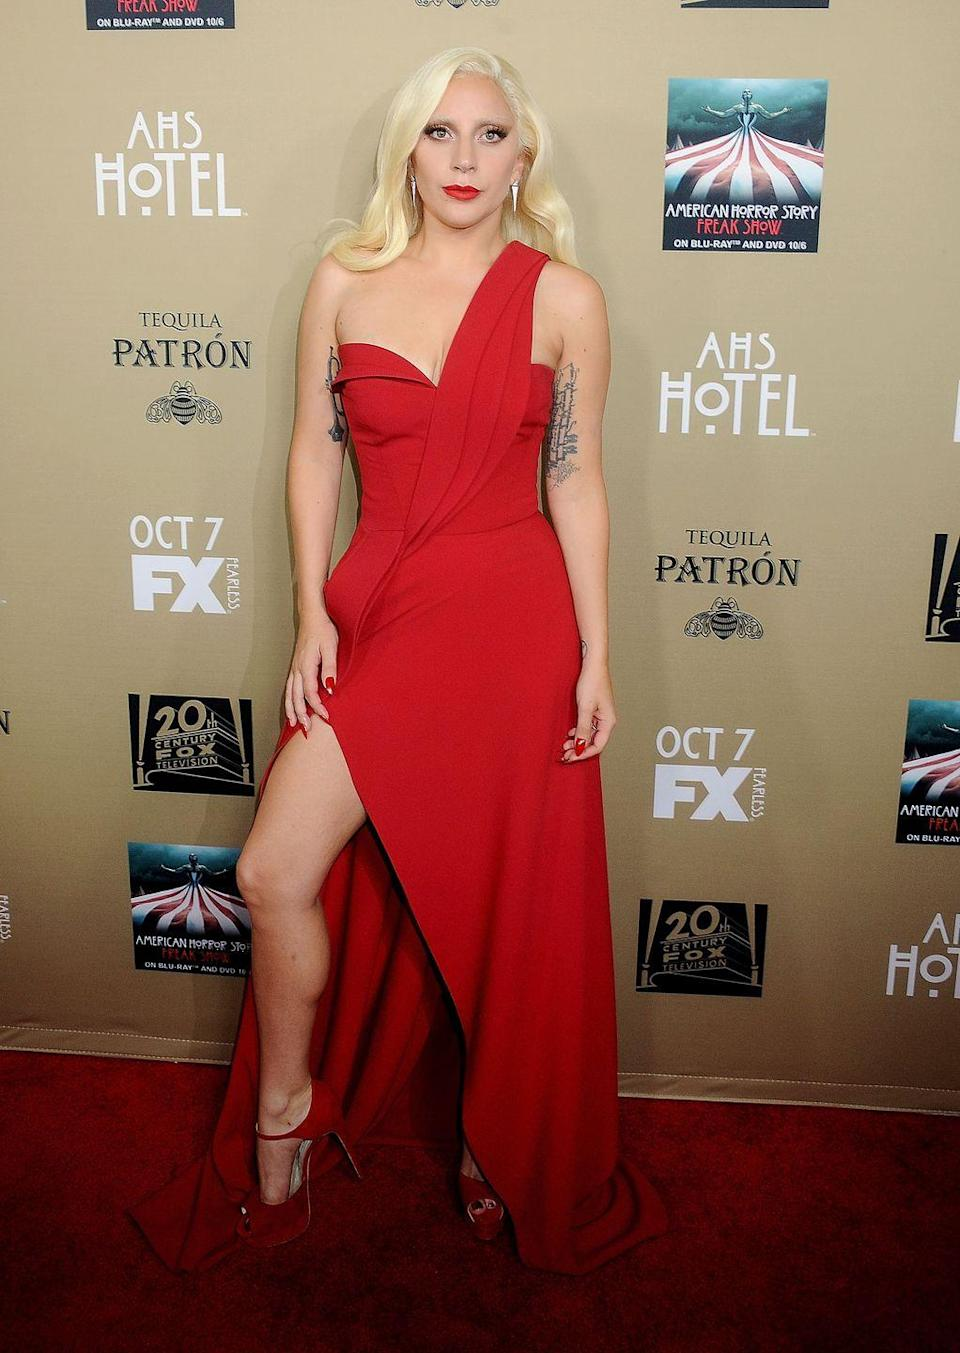 <p>Lady Gaga at the premiere screening of American Horror Story, October 2015.</p>